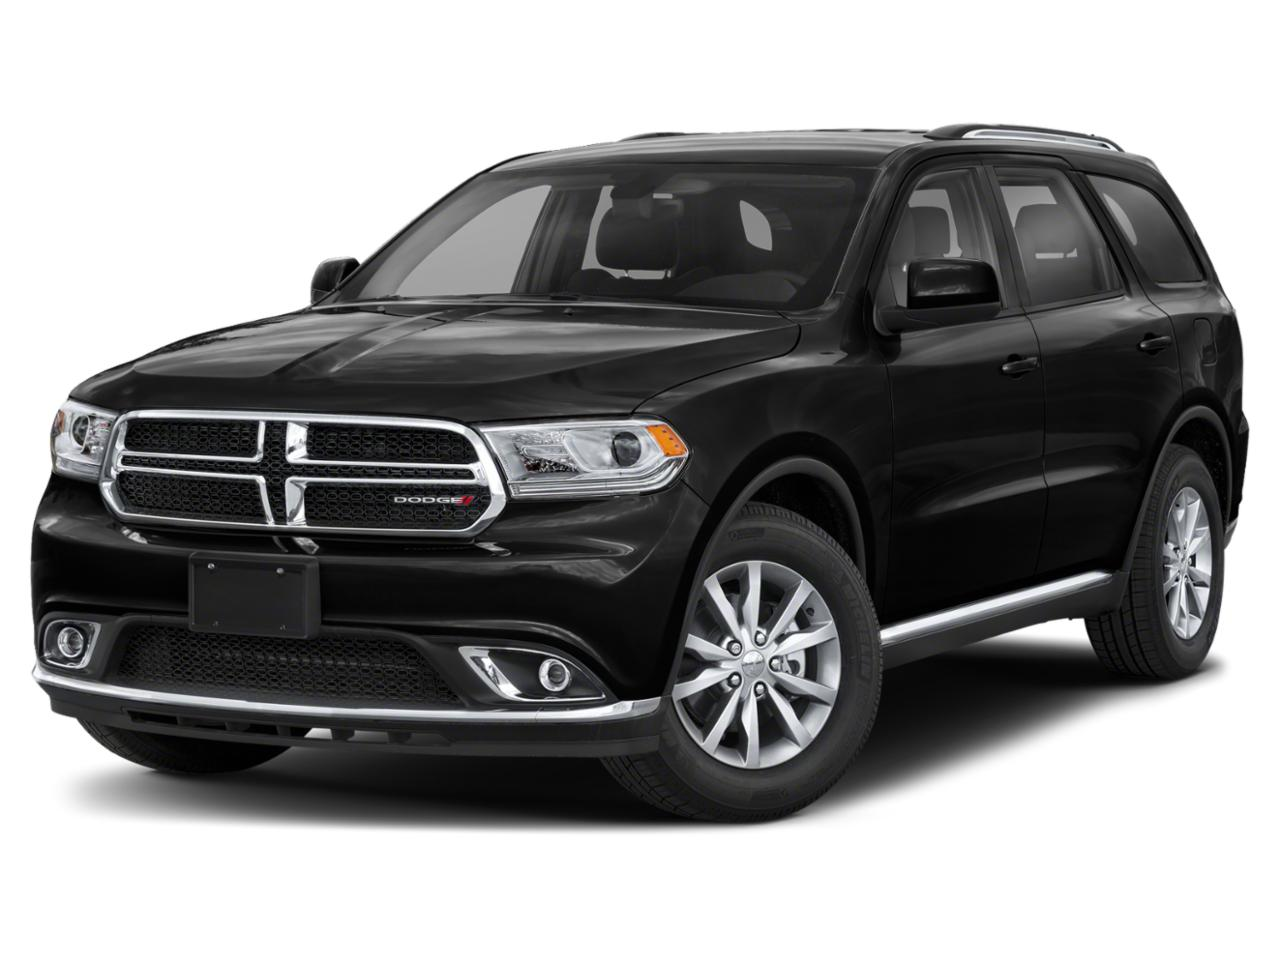 2018 Dodge Durango Vehicle Photo in Appleton, WI 54913